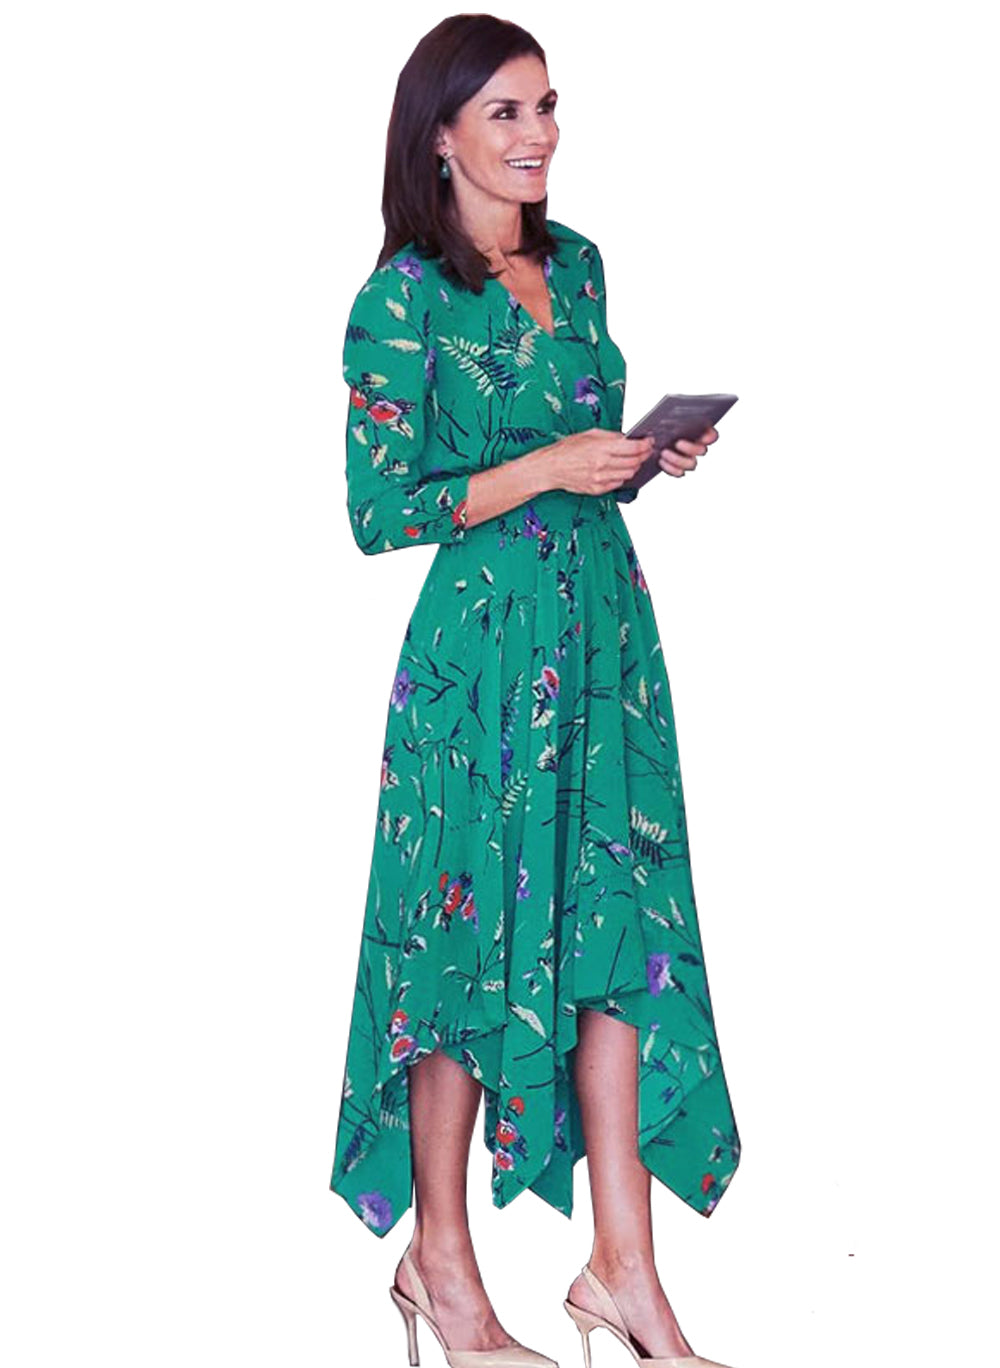 Queen Letizia V-neck Shirred Waist Asymmetric Midi Dress in Floral Print